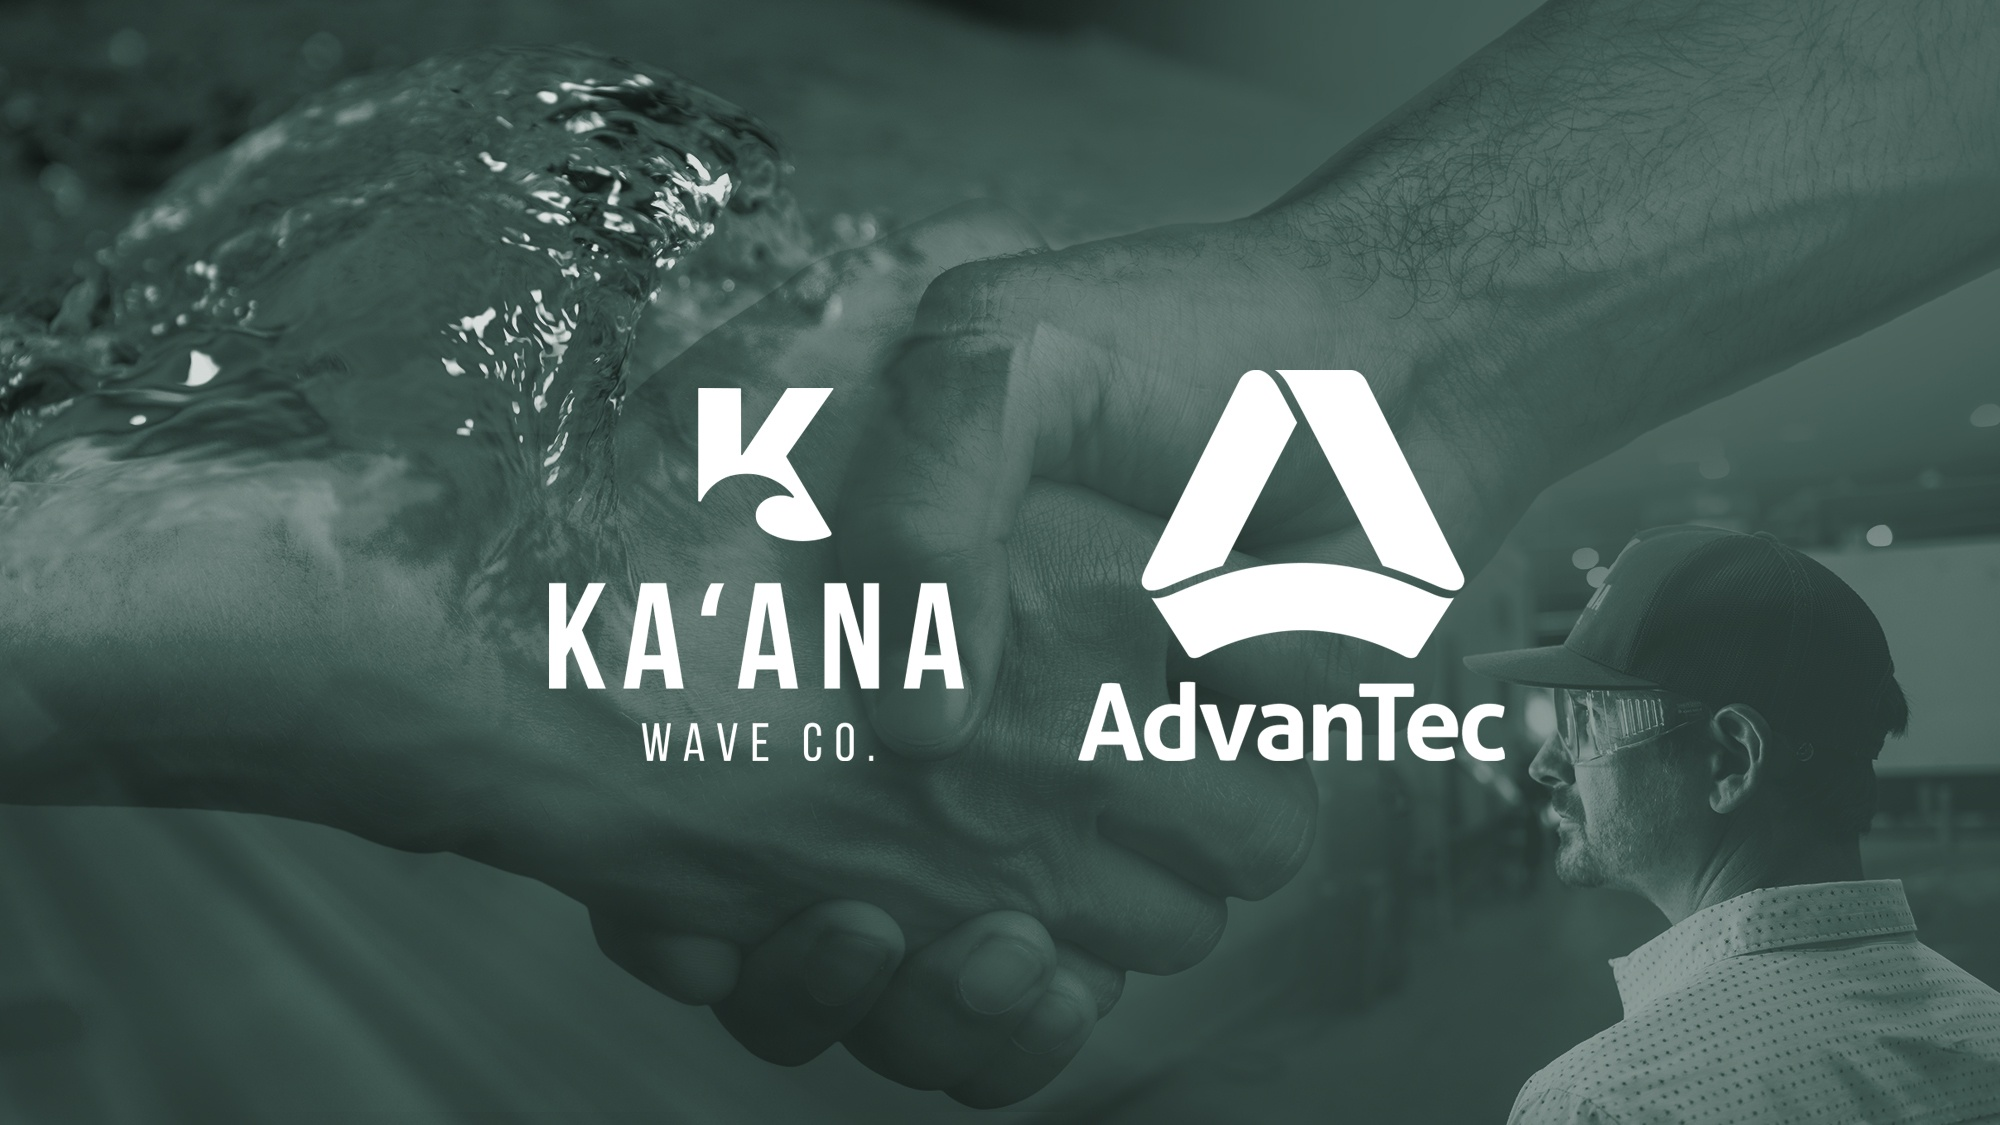 Title:Ka'ana Wave Co announces manufacturing partnership to deliver innovative wave-making system